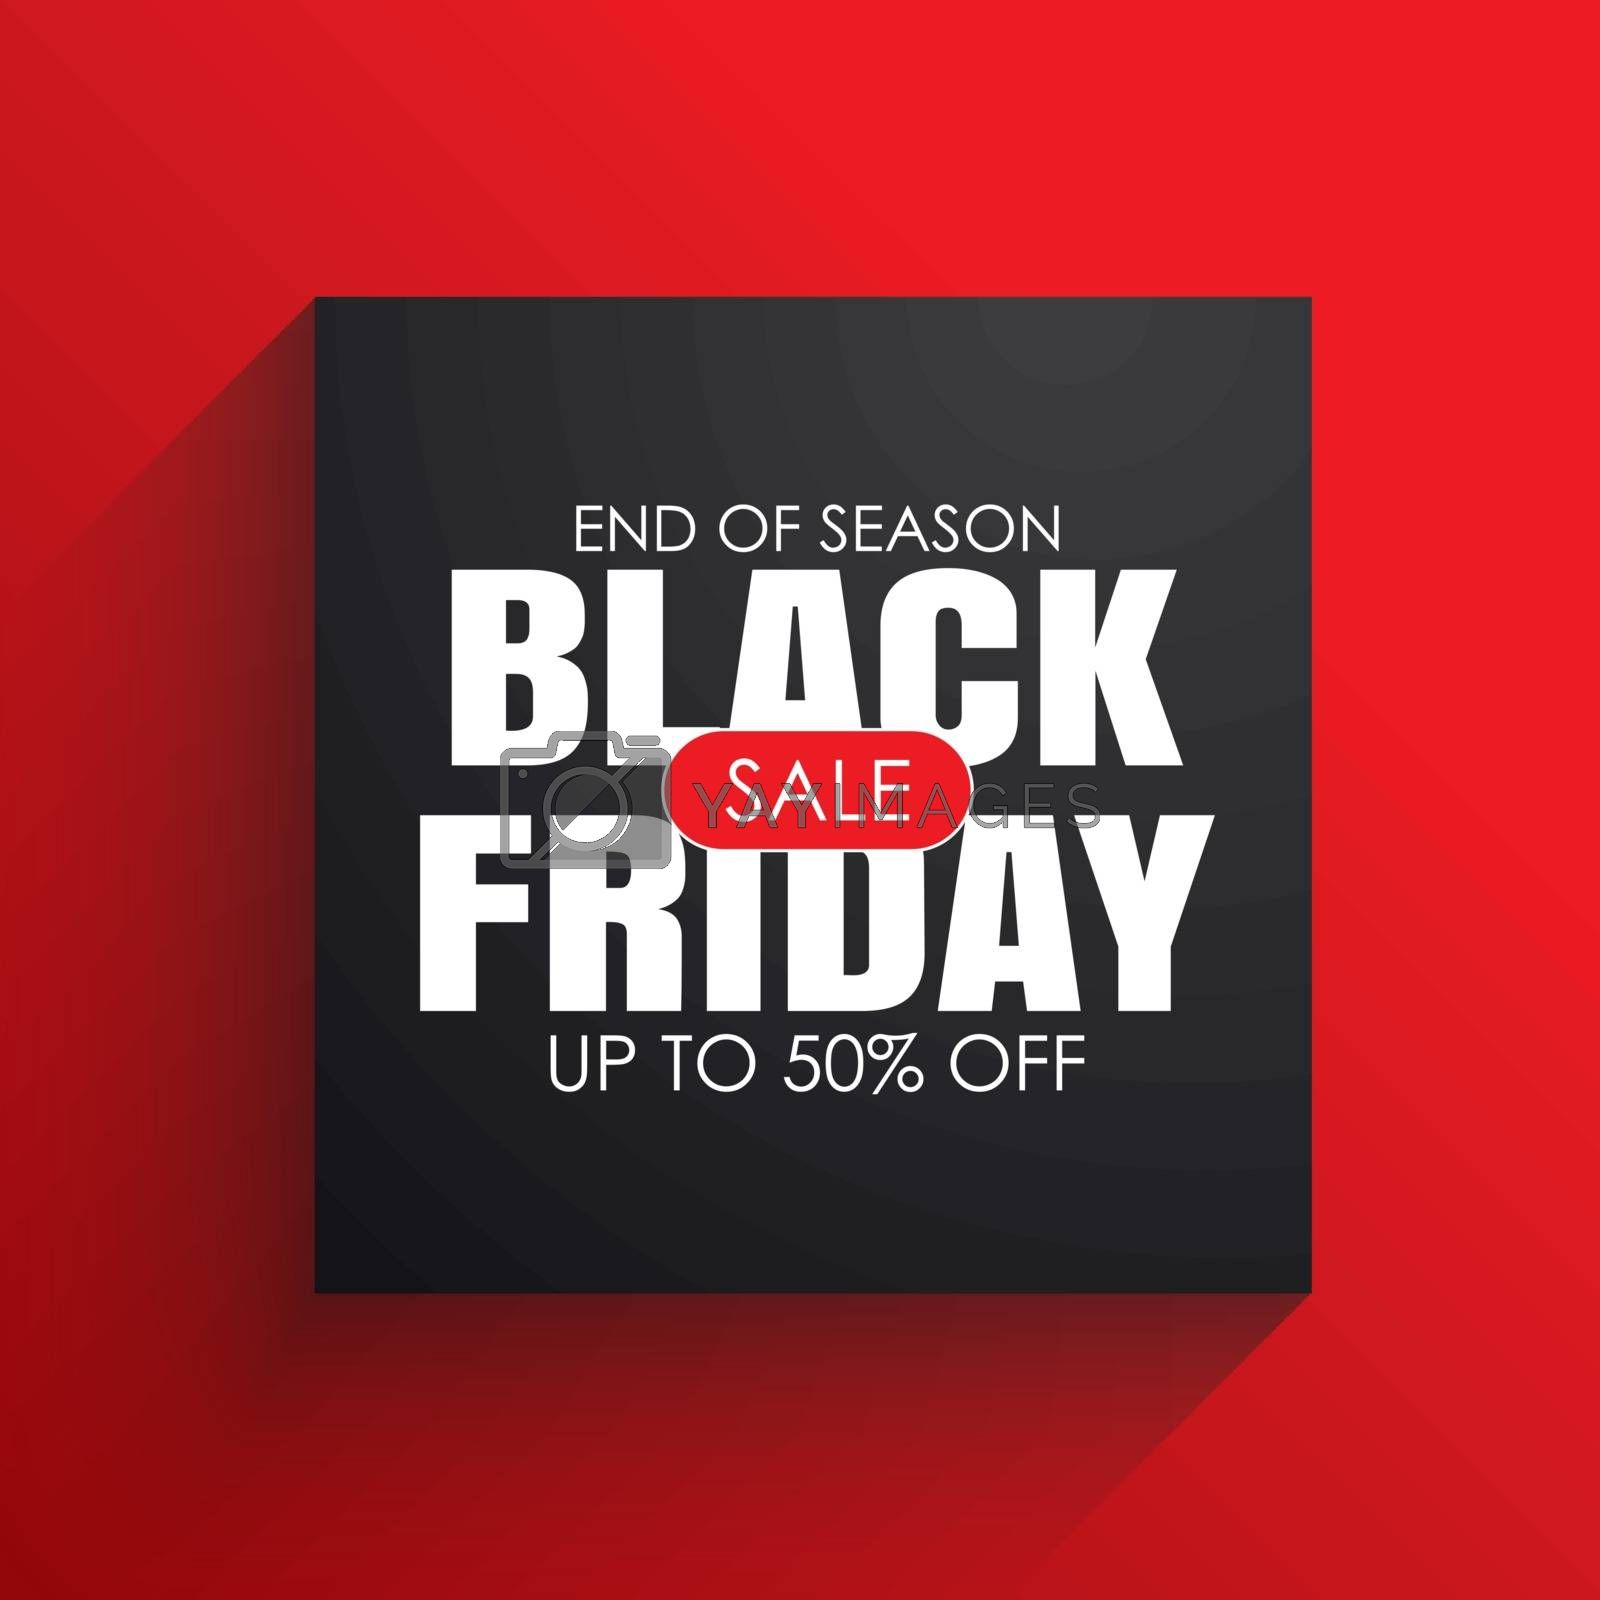 Black friday sale banner with white text on black square background. Use for discount, shopping, promotion, advertising.